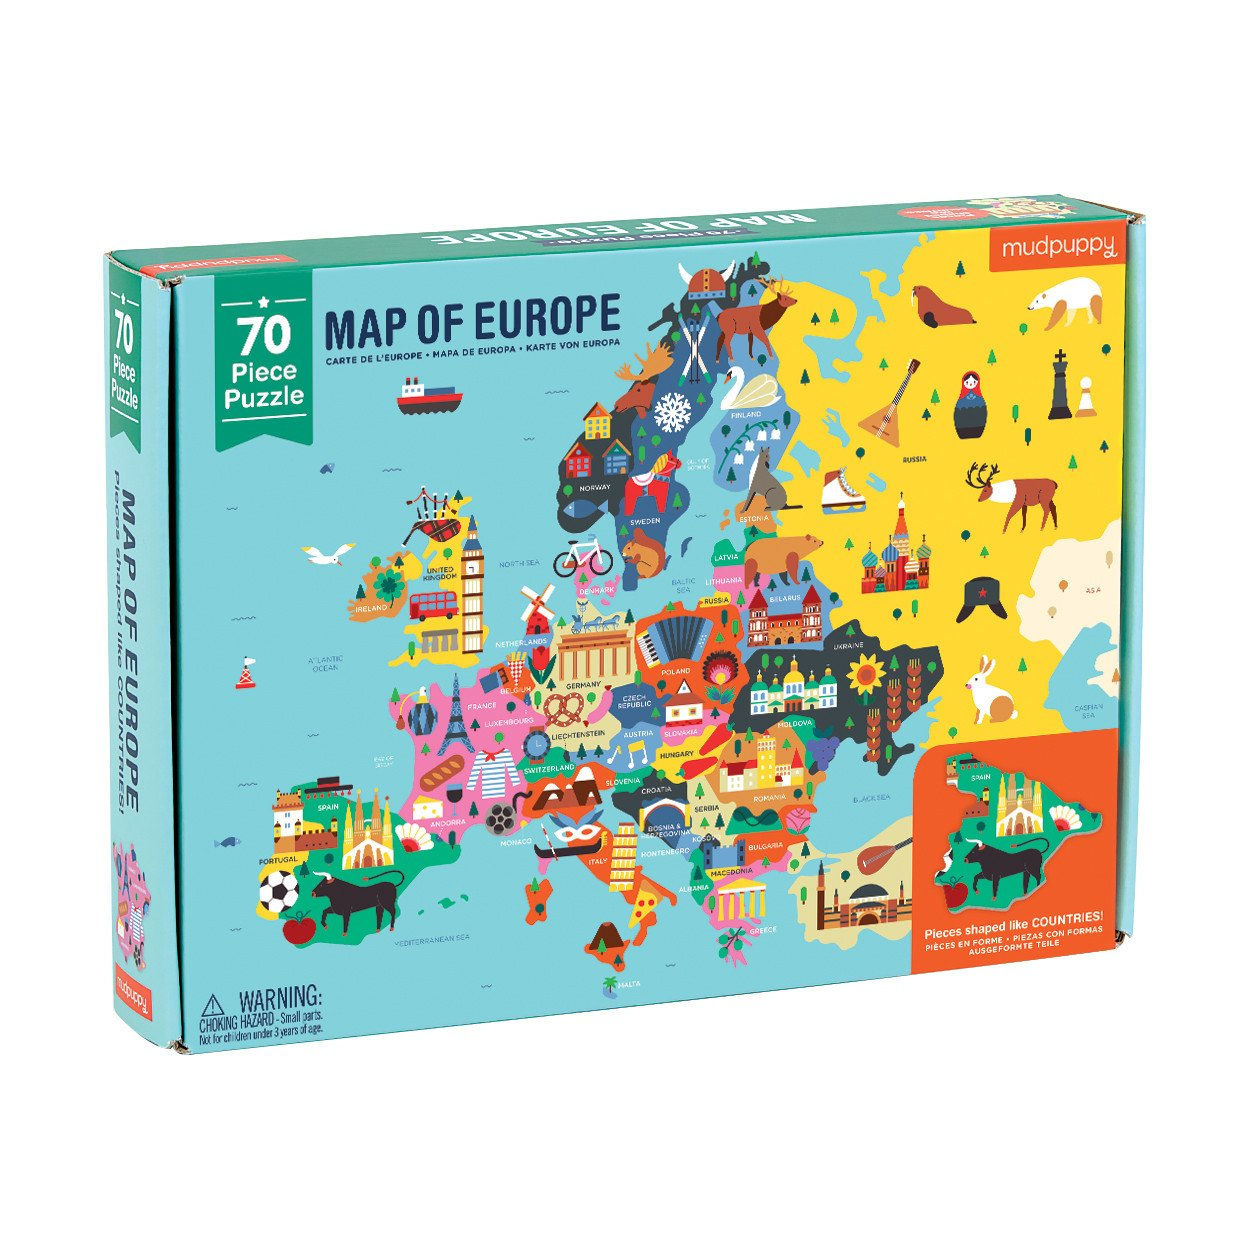 MP_GeoPuzzle_MapofEurope_CVR_9780735351943